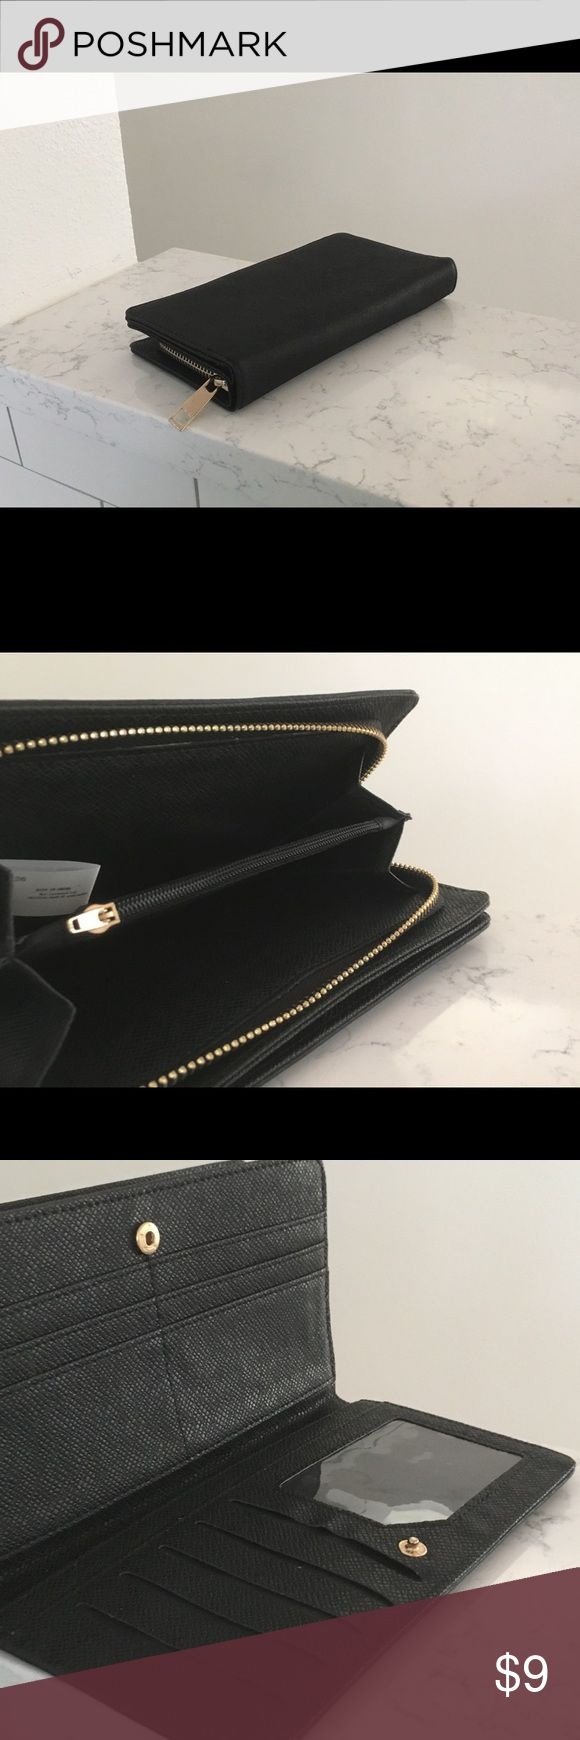 Women's black wallet Inventory refresh! This is a new wallet from my online boutique, wilcolife.co. Clearing out some inventory to make room for new product. No particular brand, just a great everyday staple. Faux leather. Bags Wallets